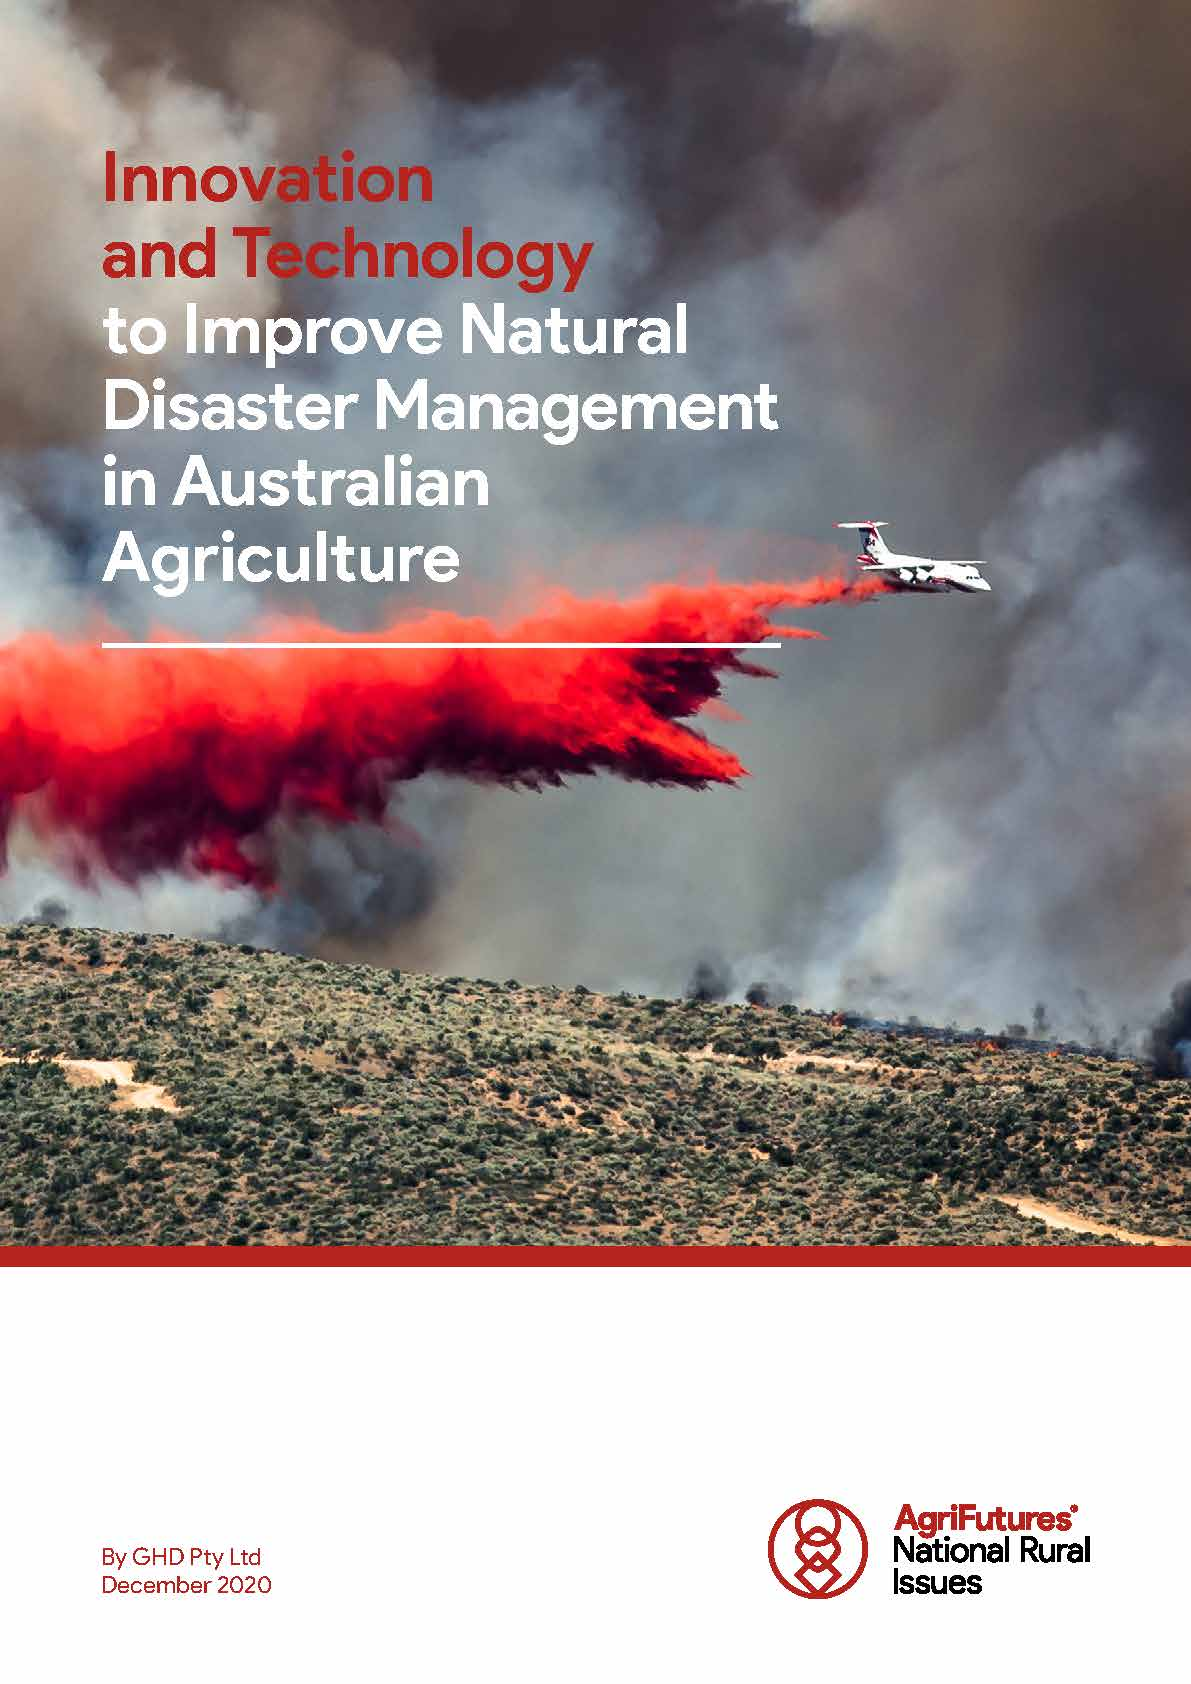 Innovation and Technology to Improve Natural Disaster Management in Australian Agriculture - image